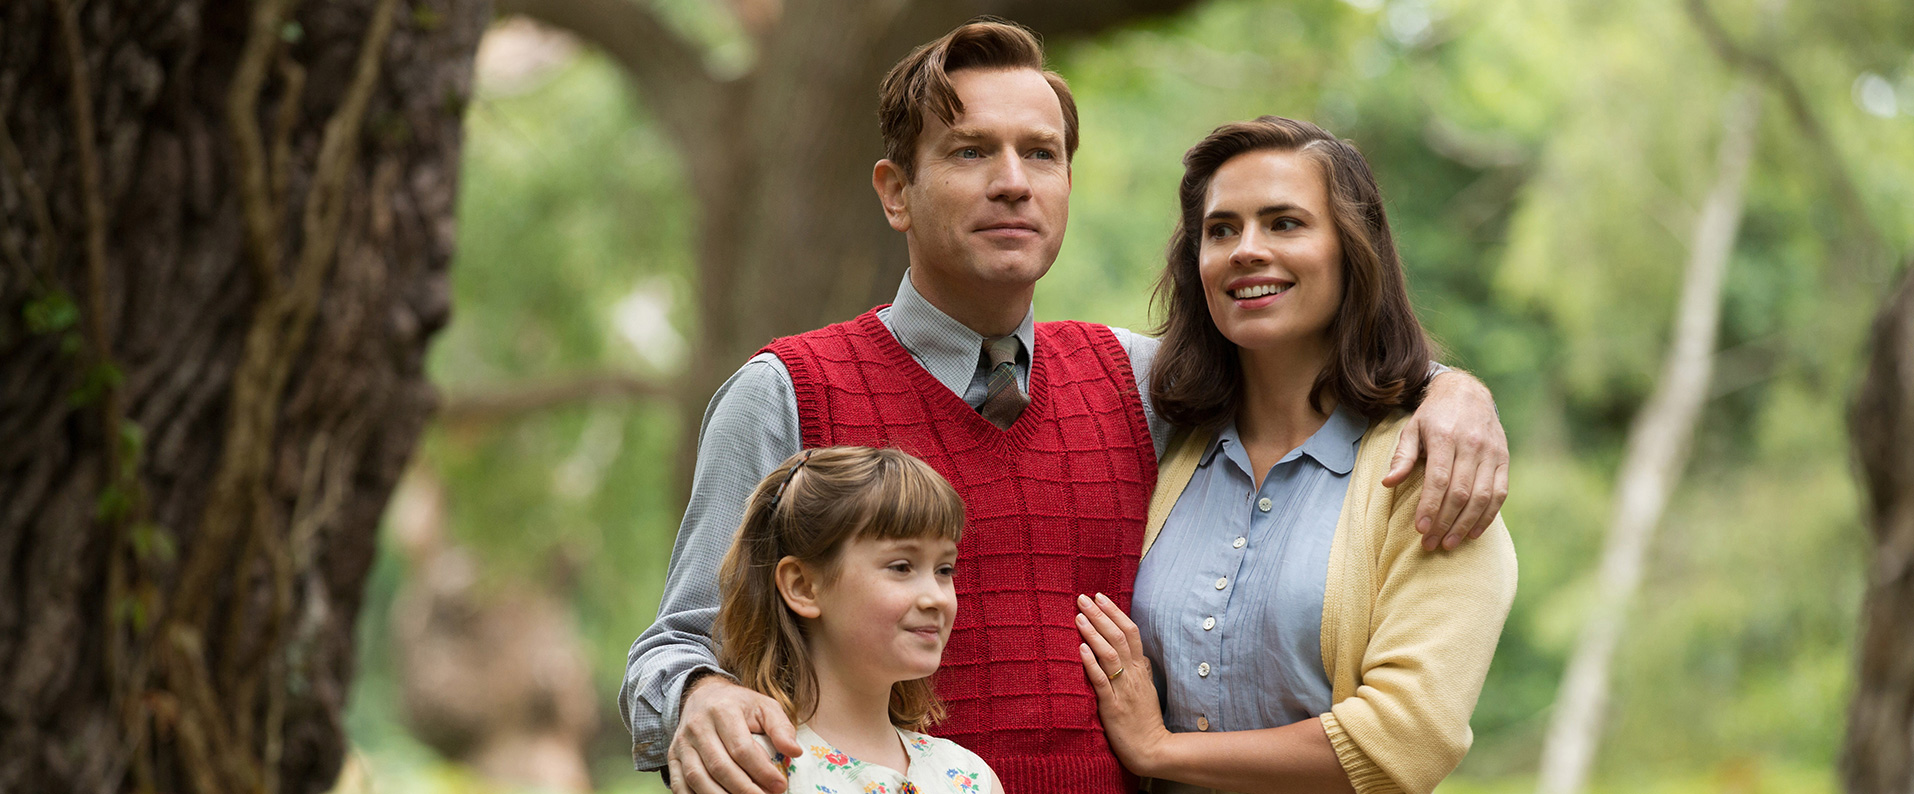 Christopher Robin (McGregor)is living the grown up life with wife Evelyn (Atwell) and daughter Madeline (Carmichael).